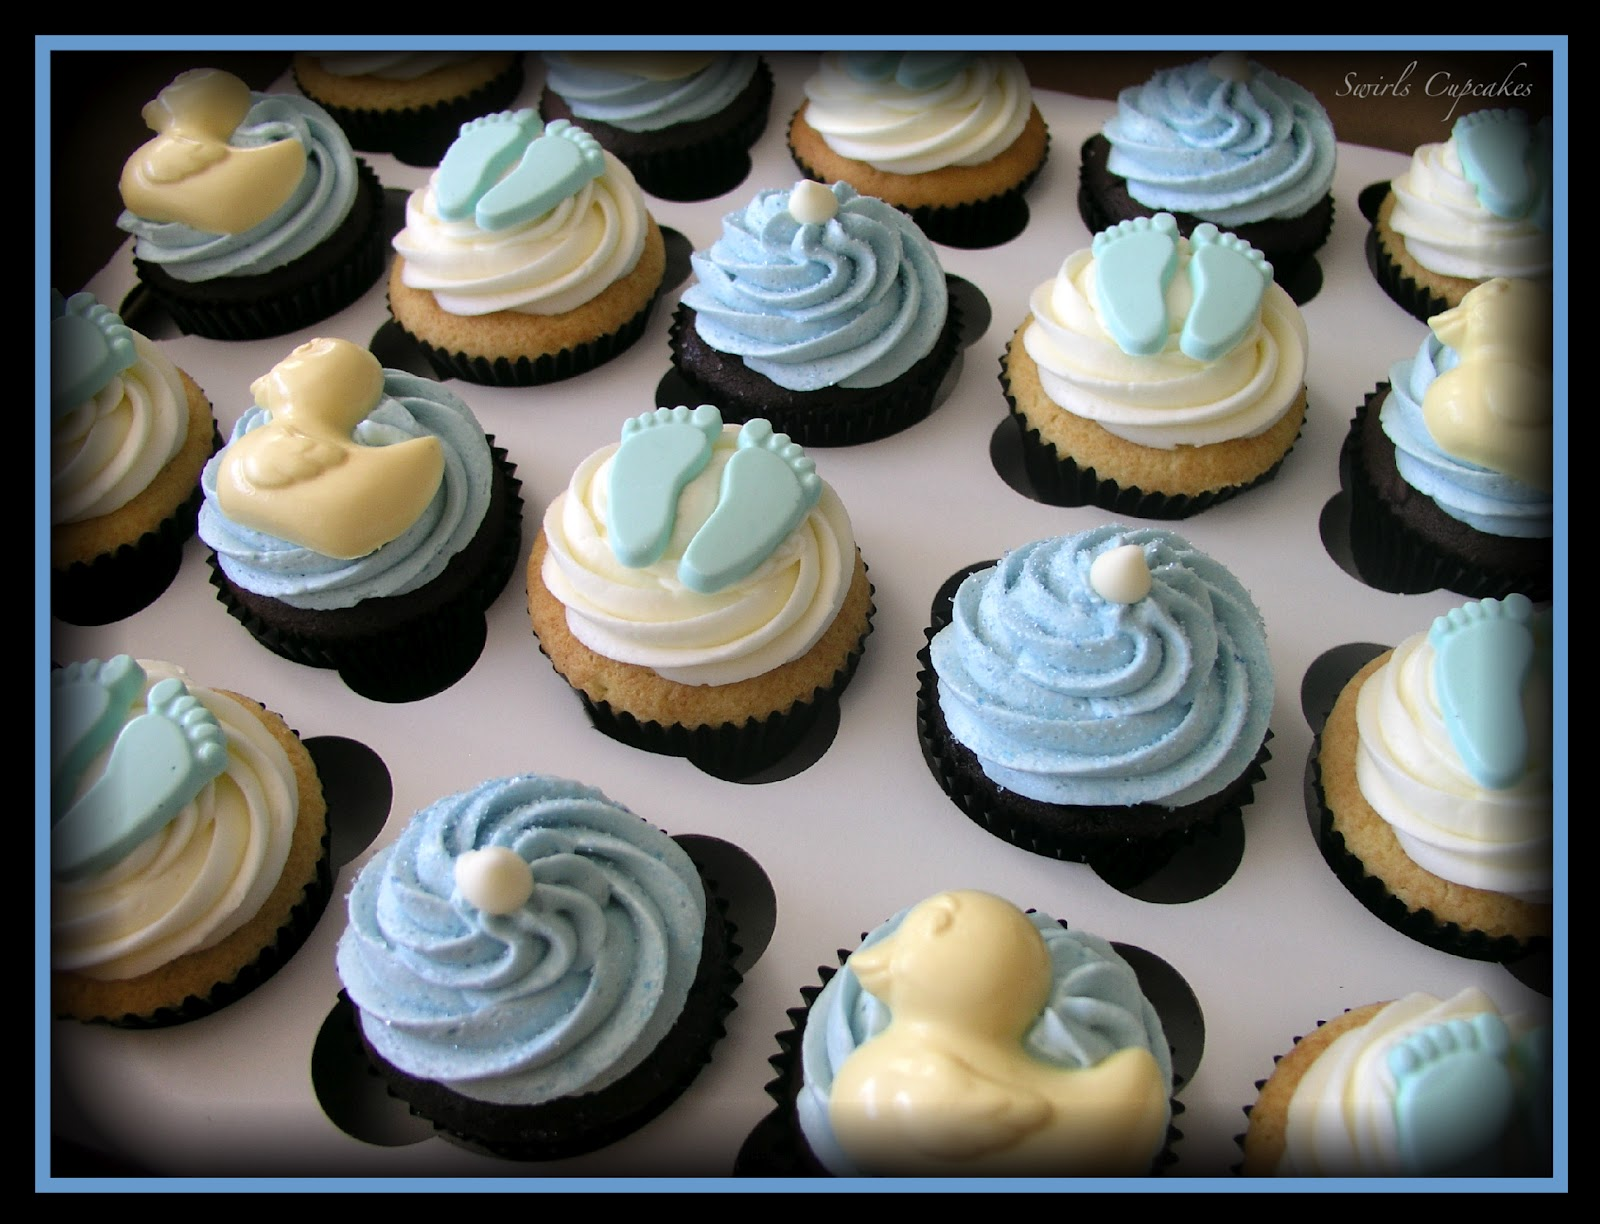 Swirls Cupcakes!: IT S A BOY! Baby Shower Cupcakes